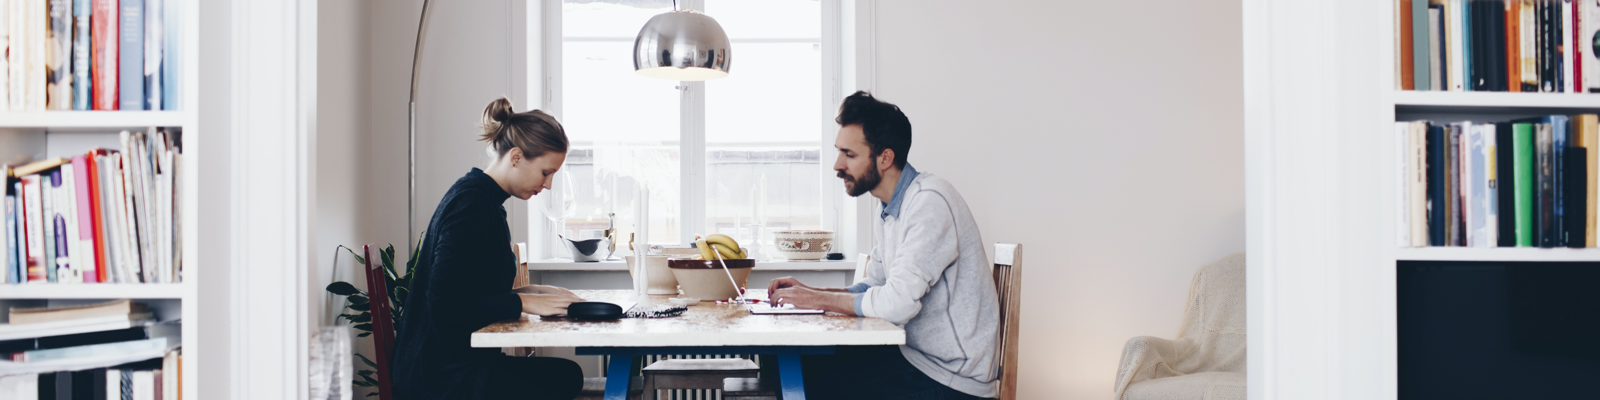 Banner image of a man and woman siting at a shared desk, face to face, working on their laptops.